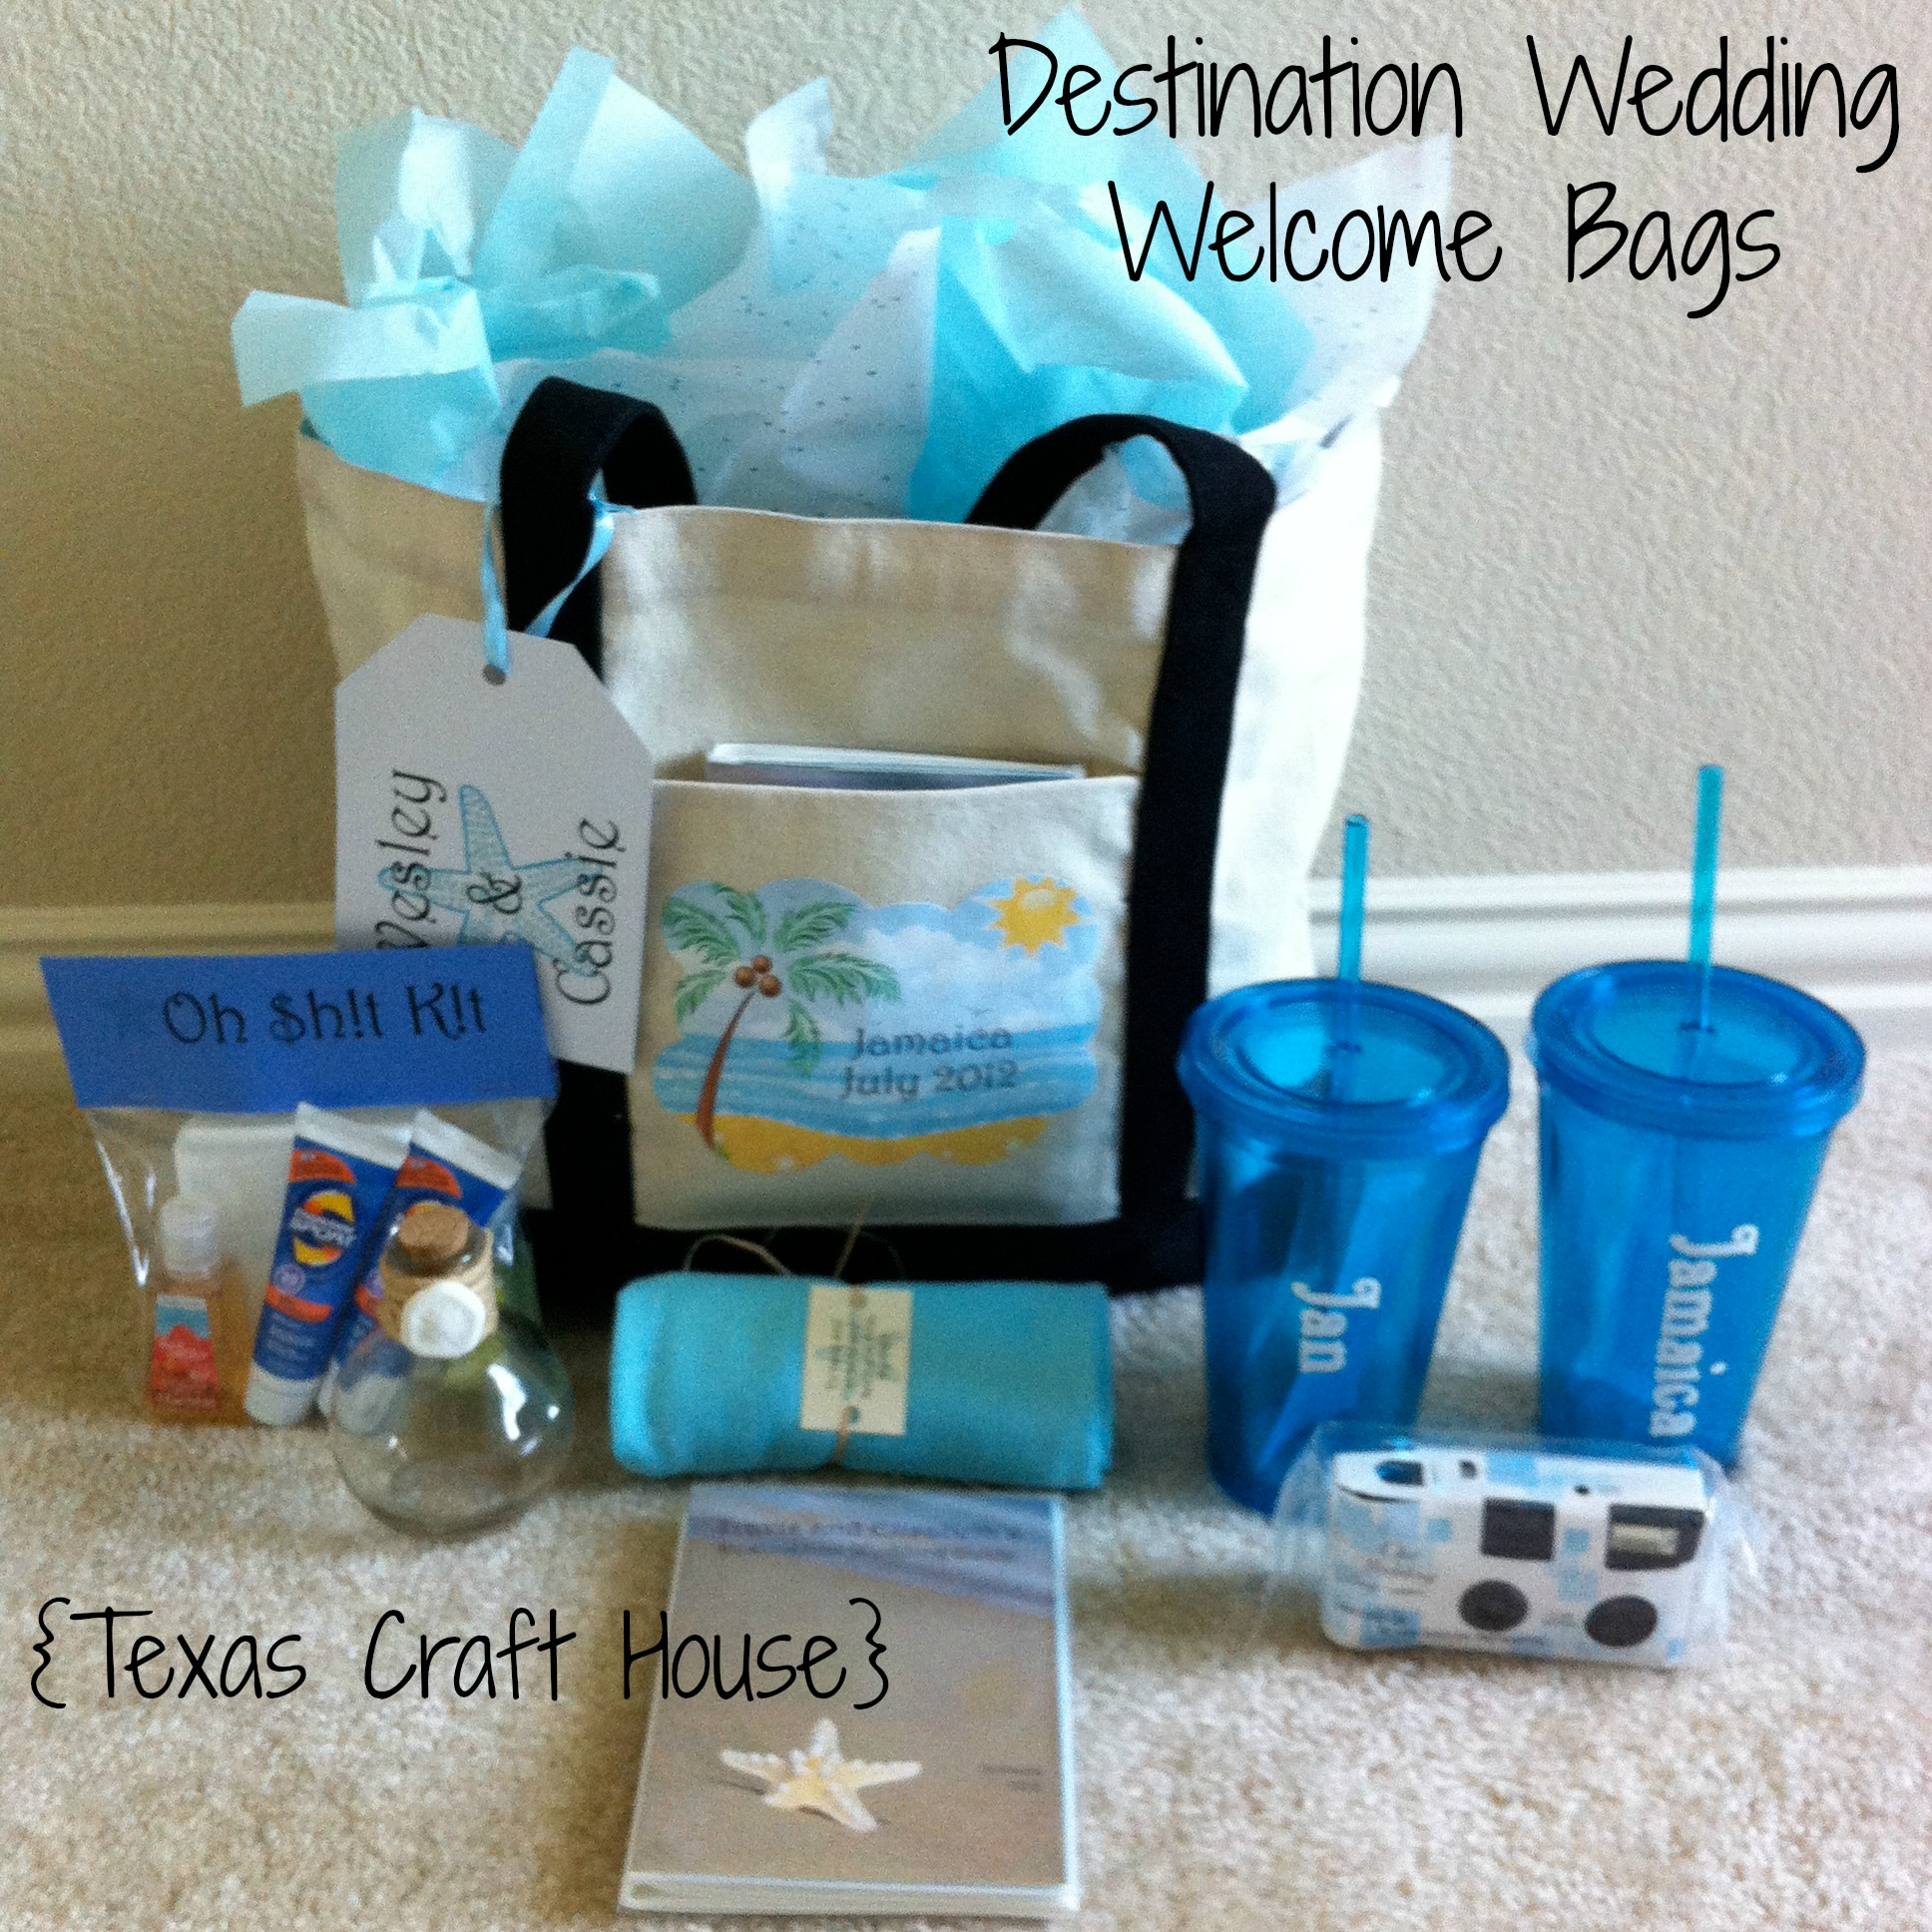 Destination Wedding Gift Baskets Guests : Destination Wedding Welcome Bags DIY Texas Craft House